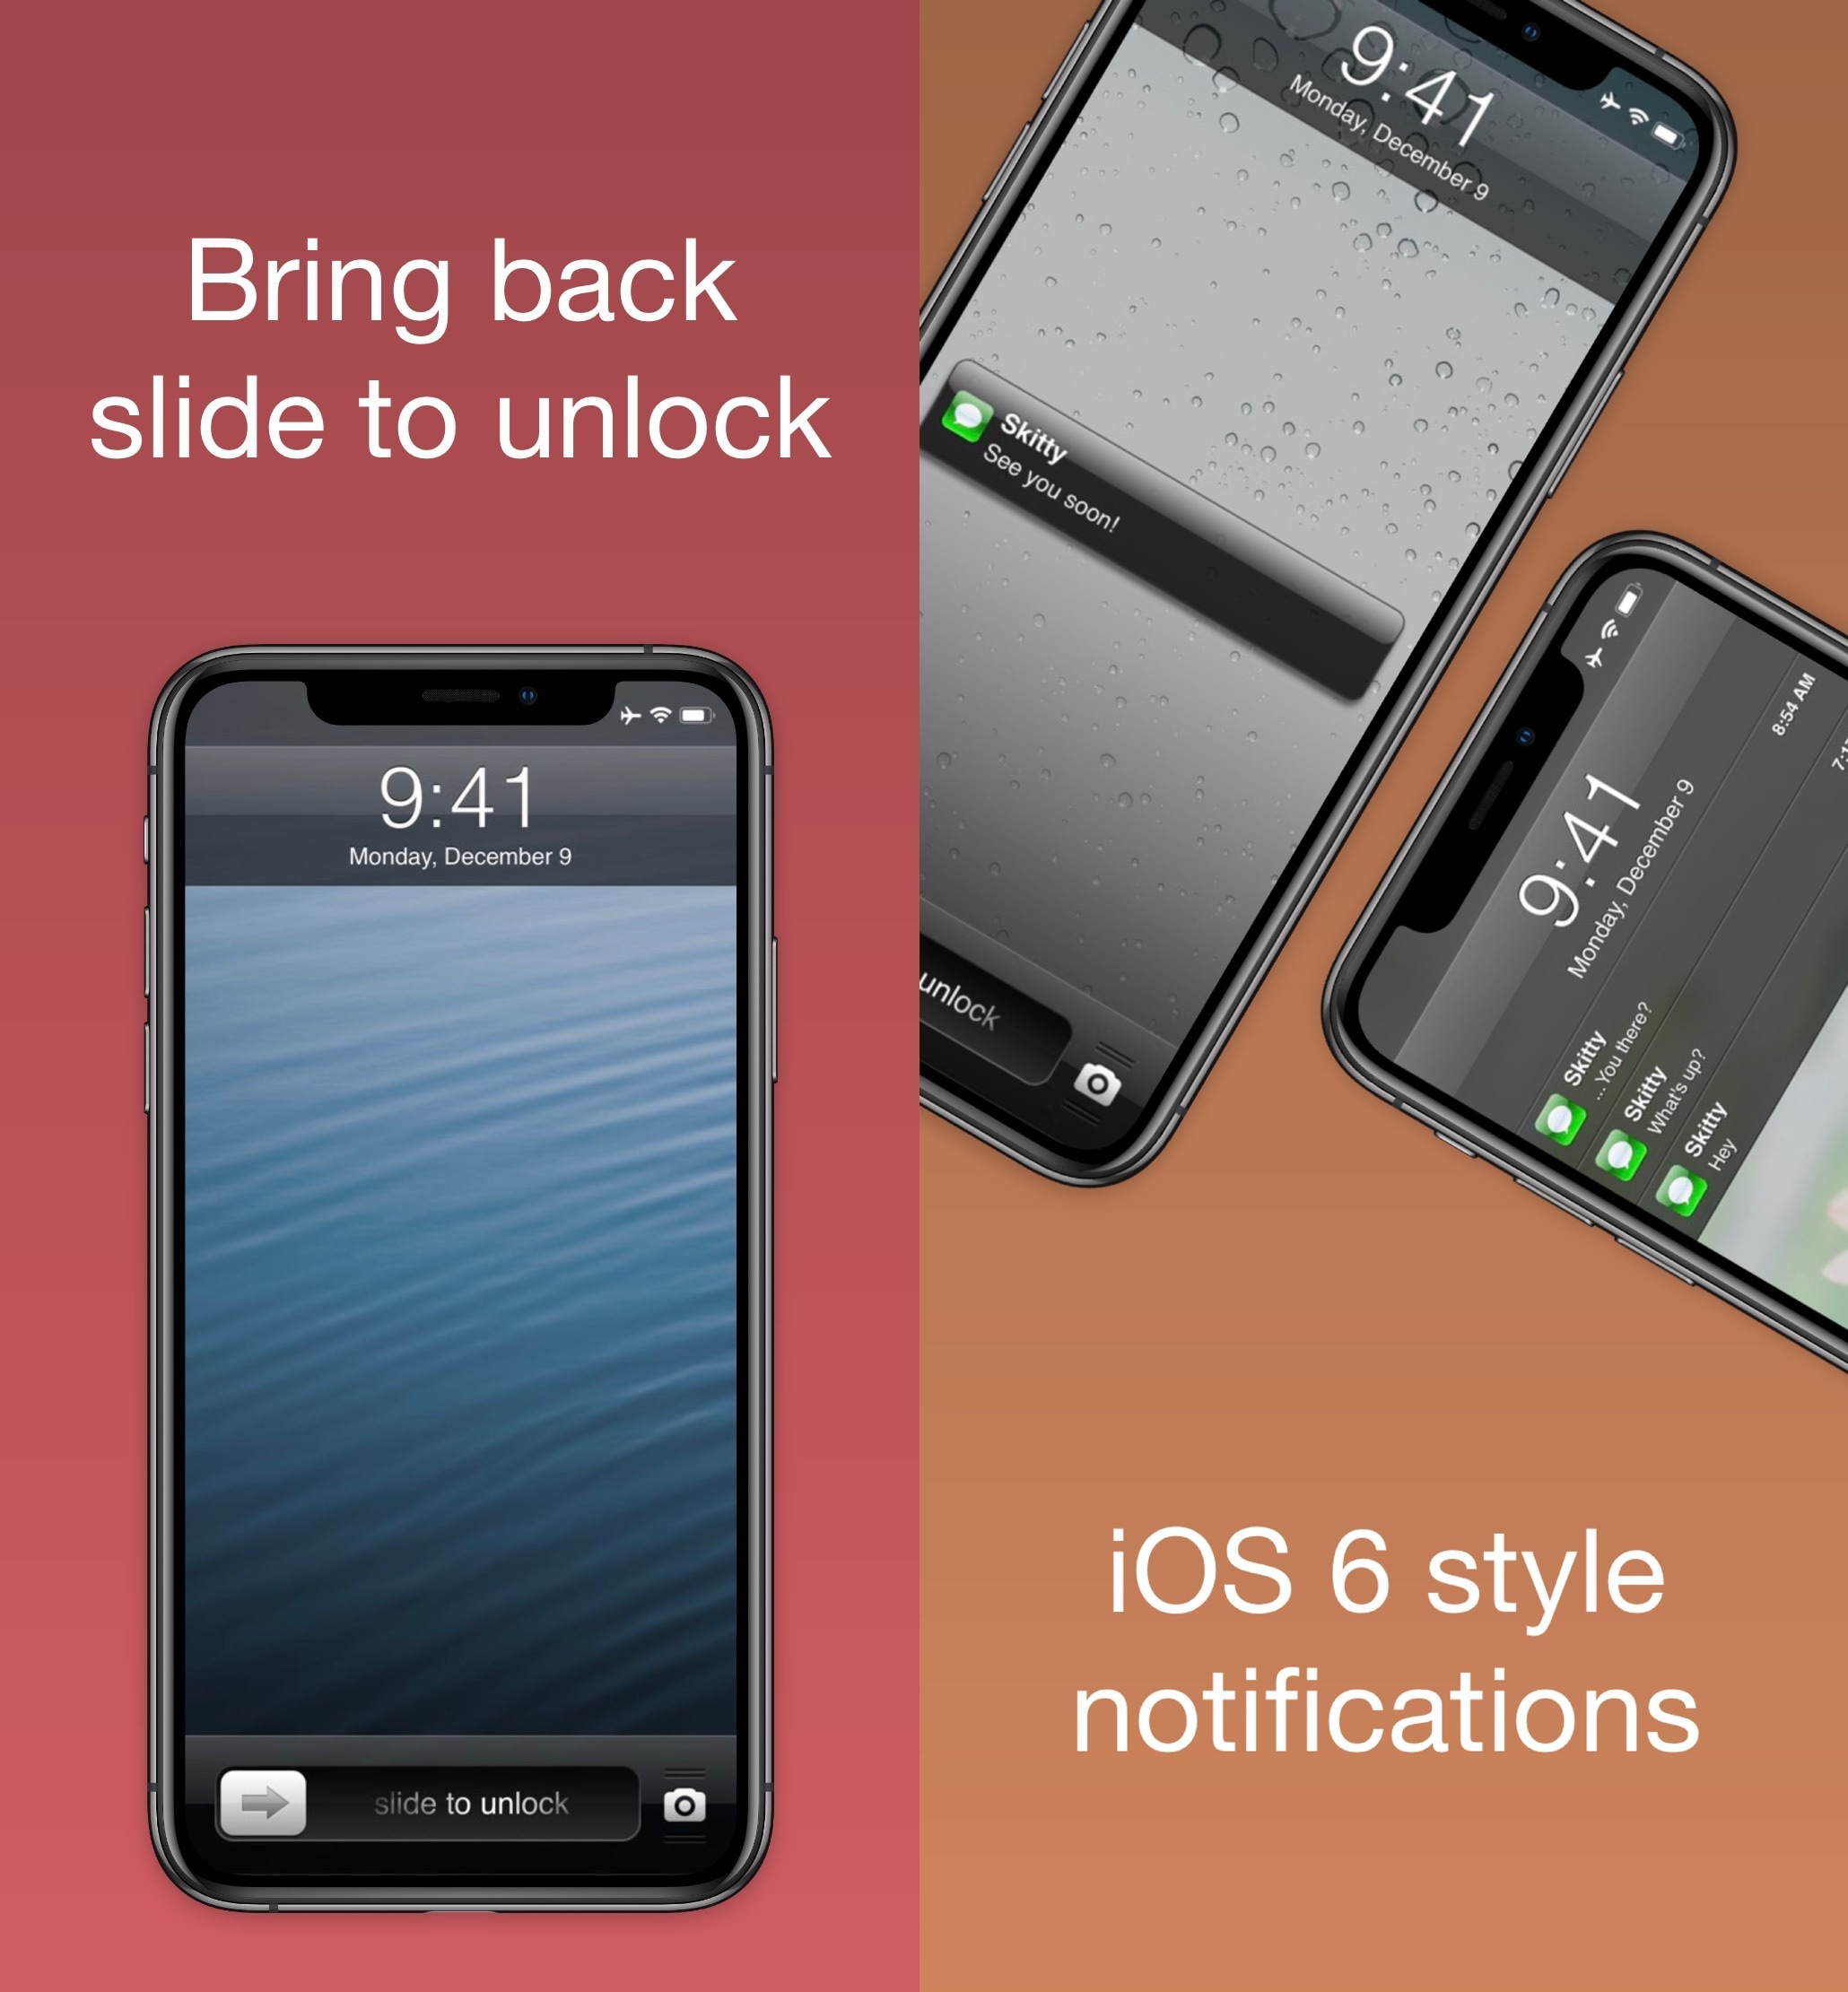 Nostalgic for the classic iOS 6 Lock screen? Try this